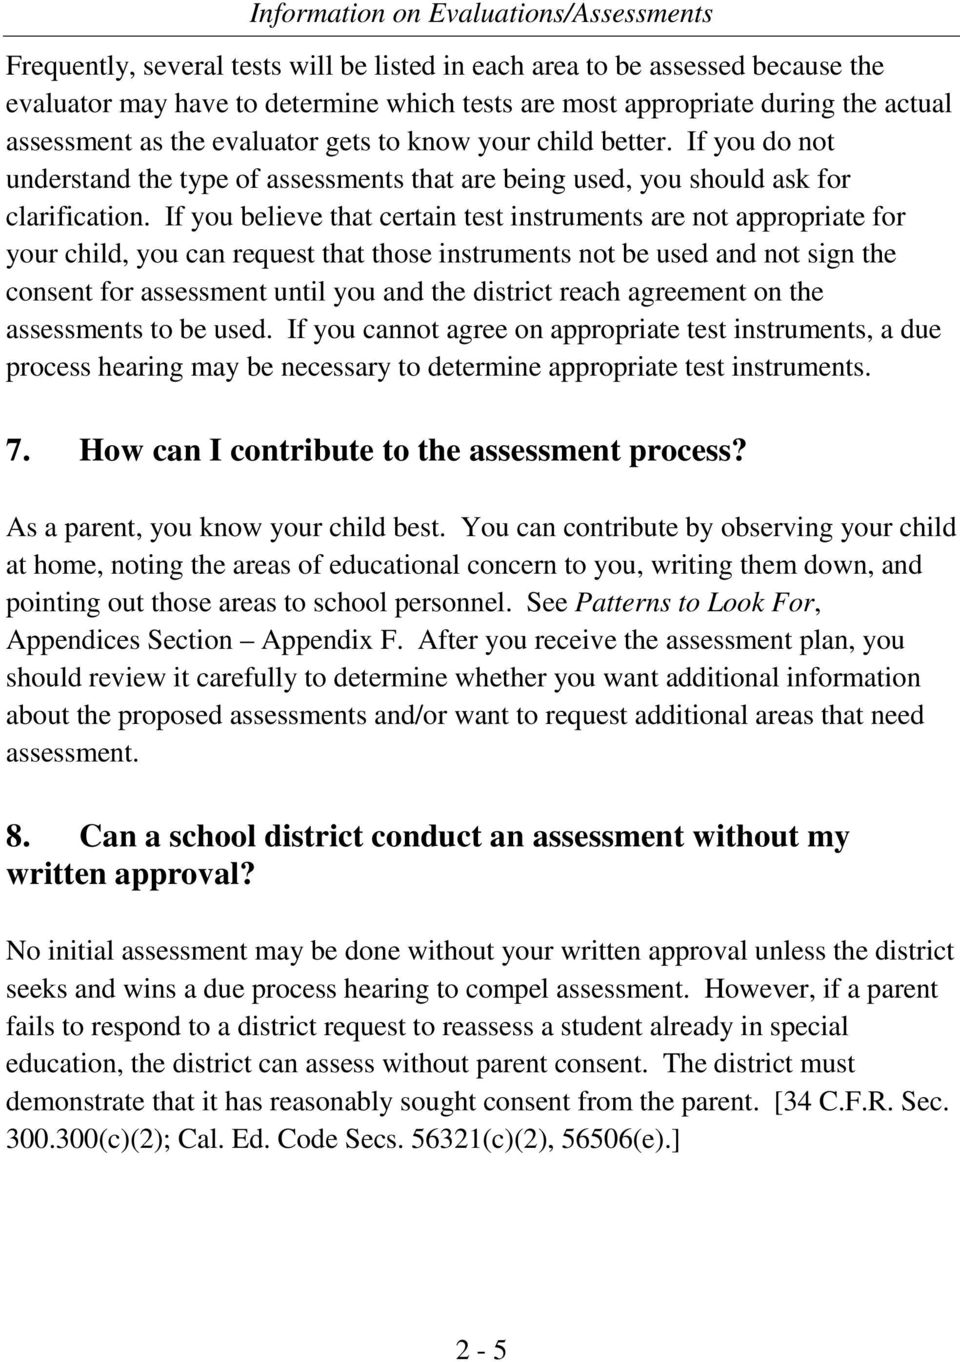 If you believe that certain test instruments are not appropriate for your child, you can request that those instruments not be used and not sign the consent for assessment until you and the district